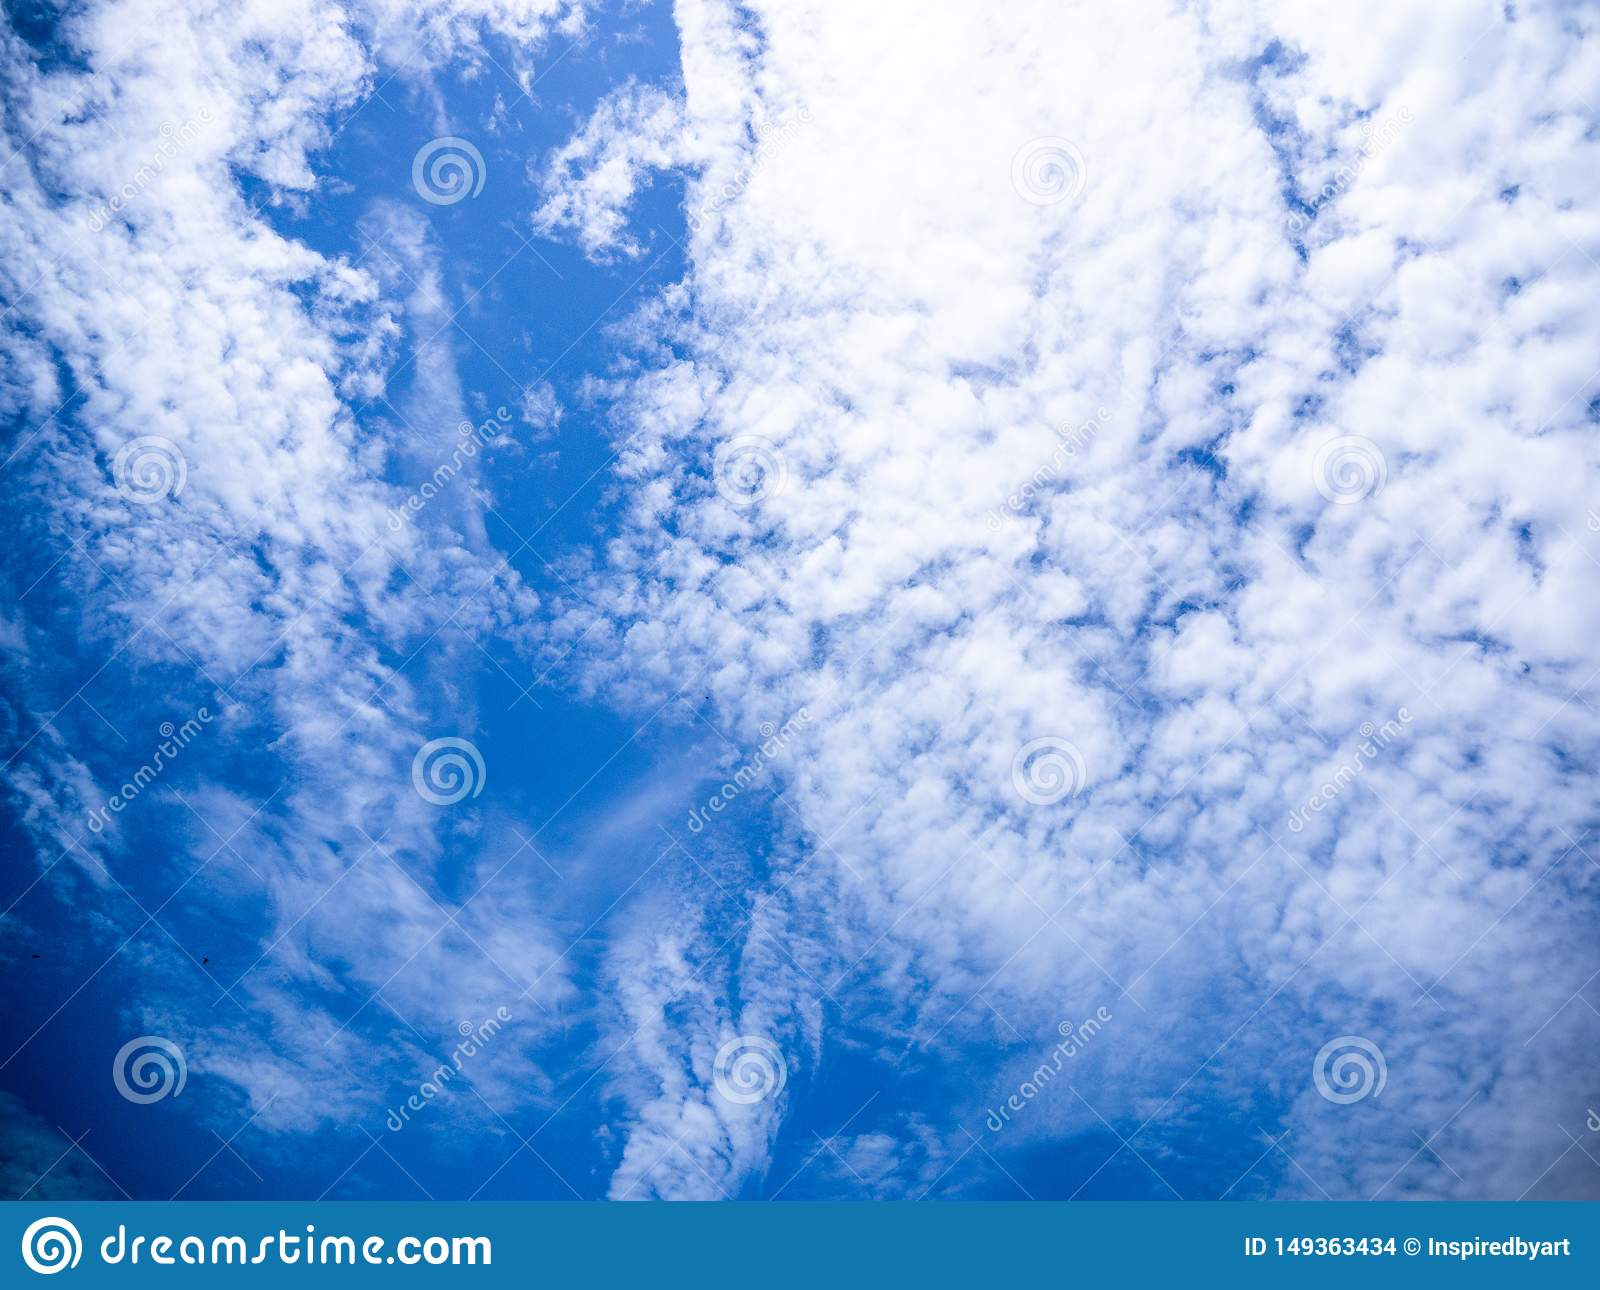 Blue sky and fluffy clouds scene